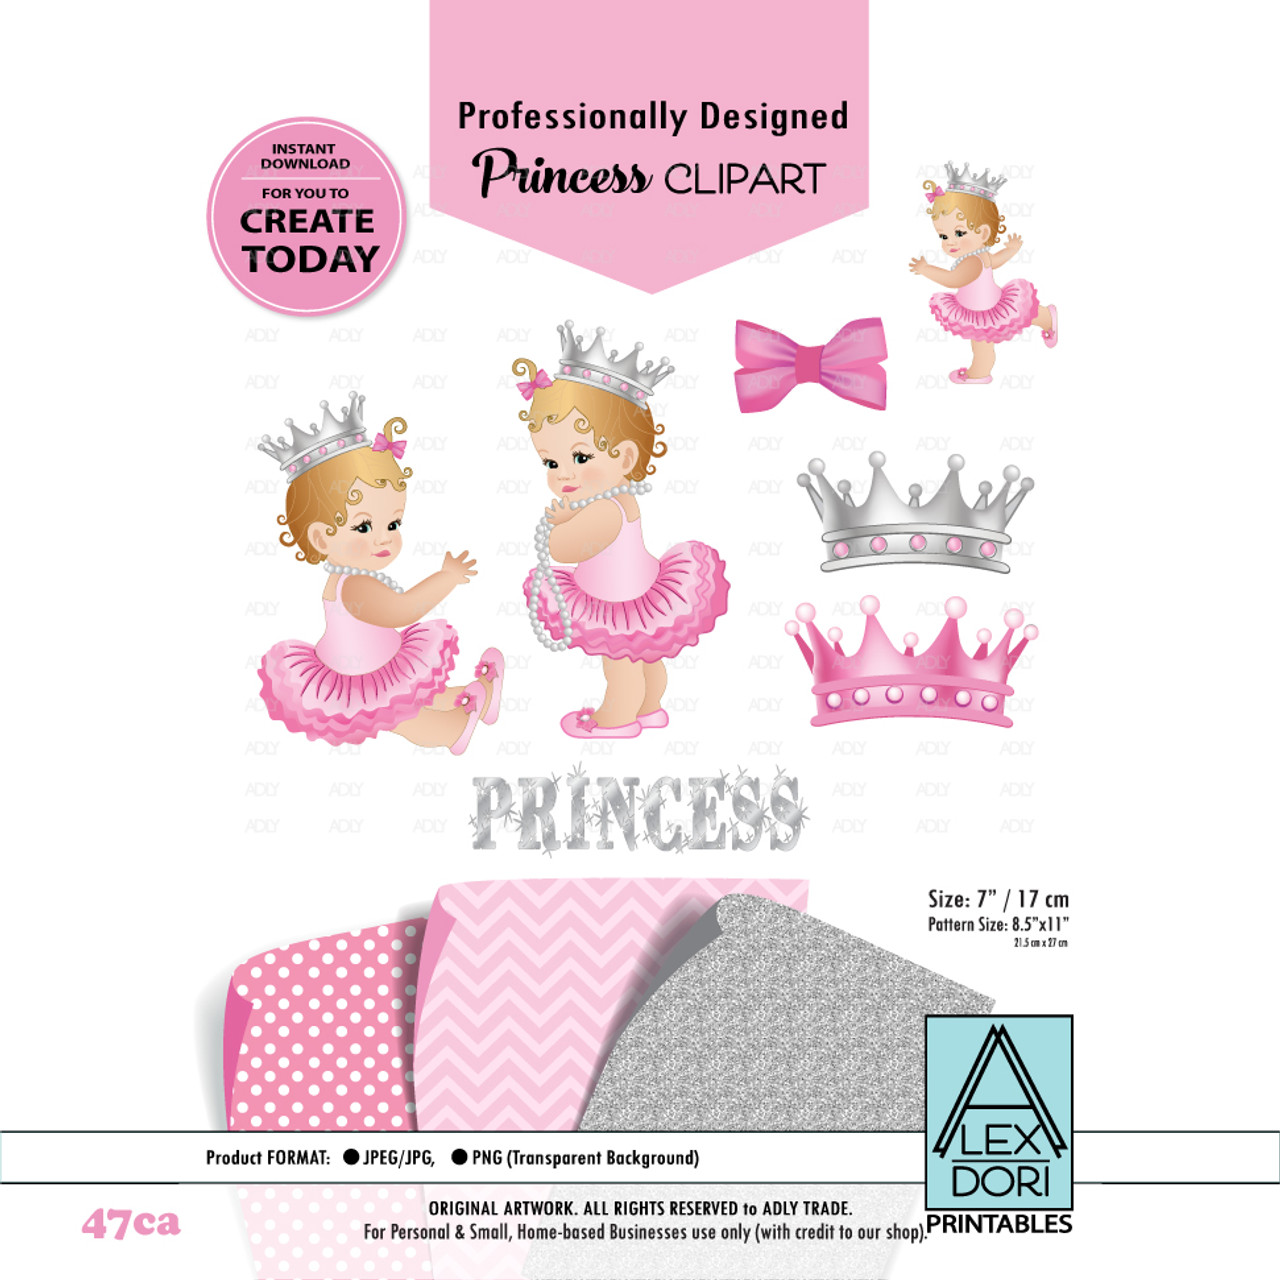 small resolution of princess baby shower digital clipart pink and gray clipart royal baby shower crowns tiara clipart adly invitations and digital party designs